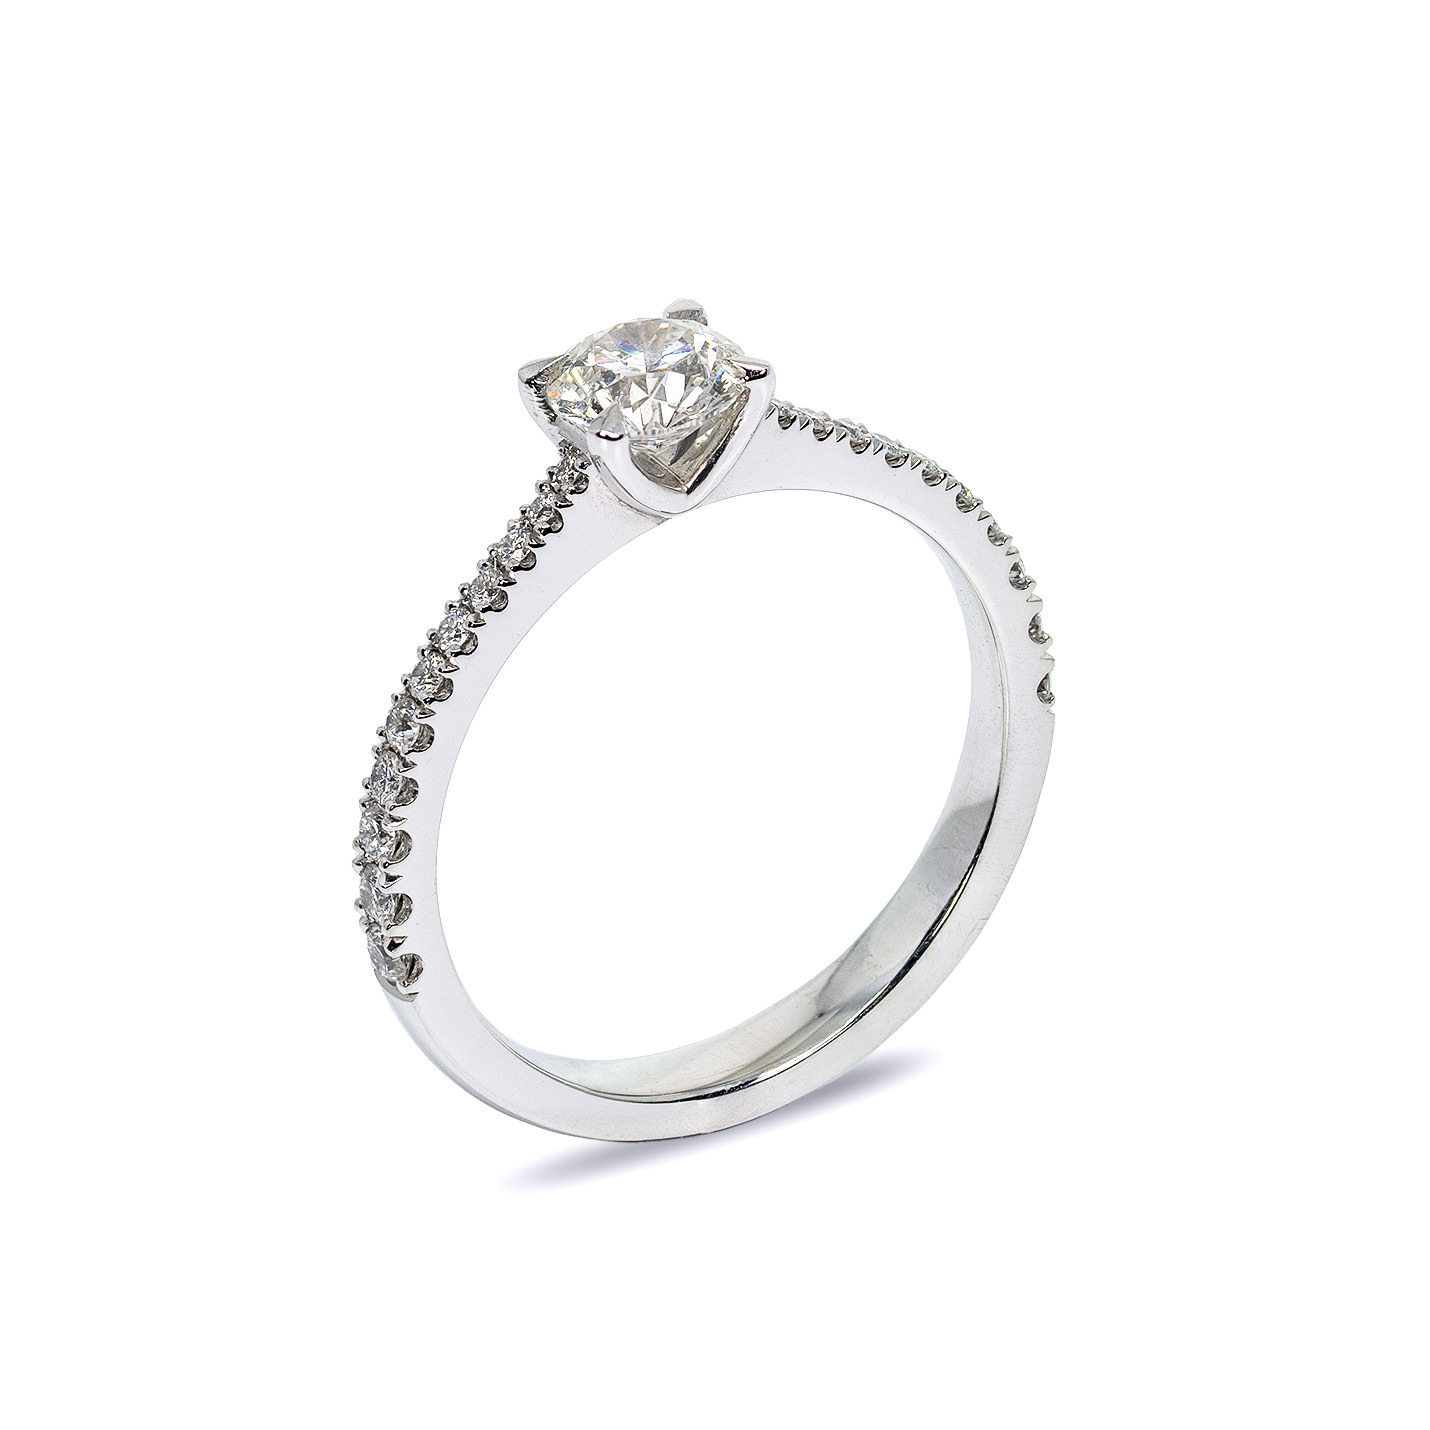 "The Stunning ""Marie"" Diamond Engagement Ring 